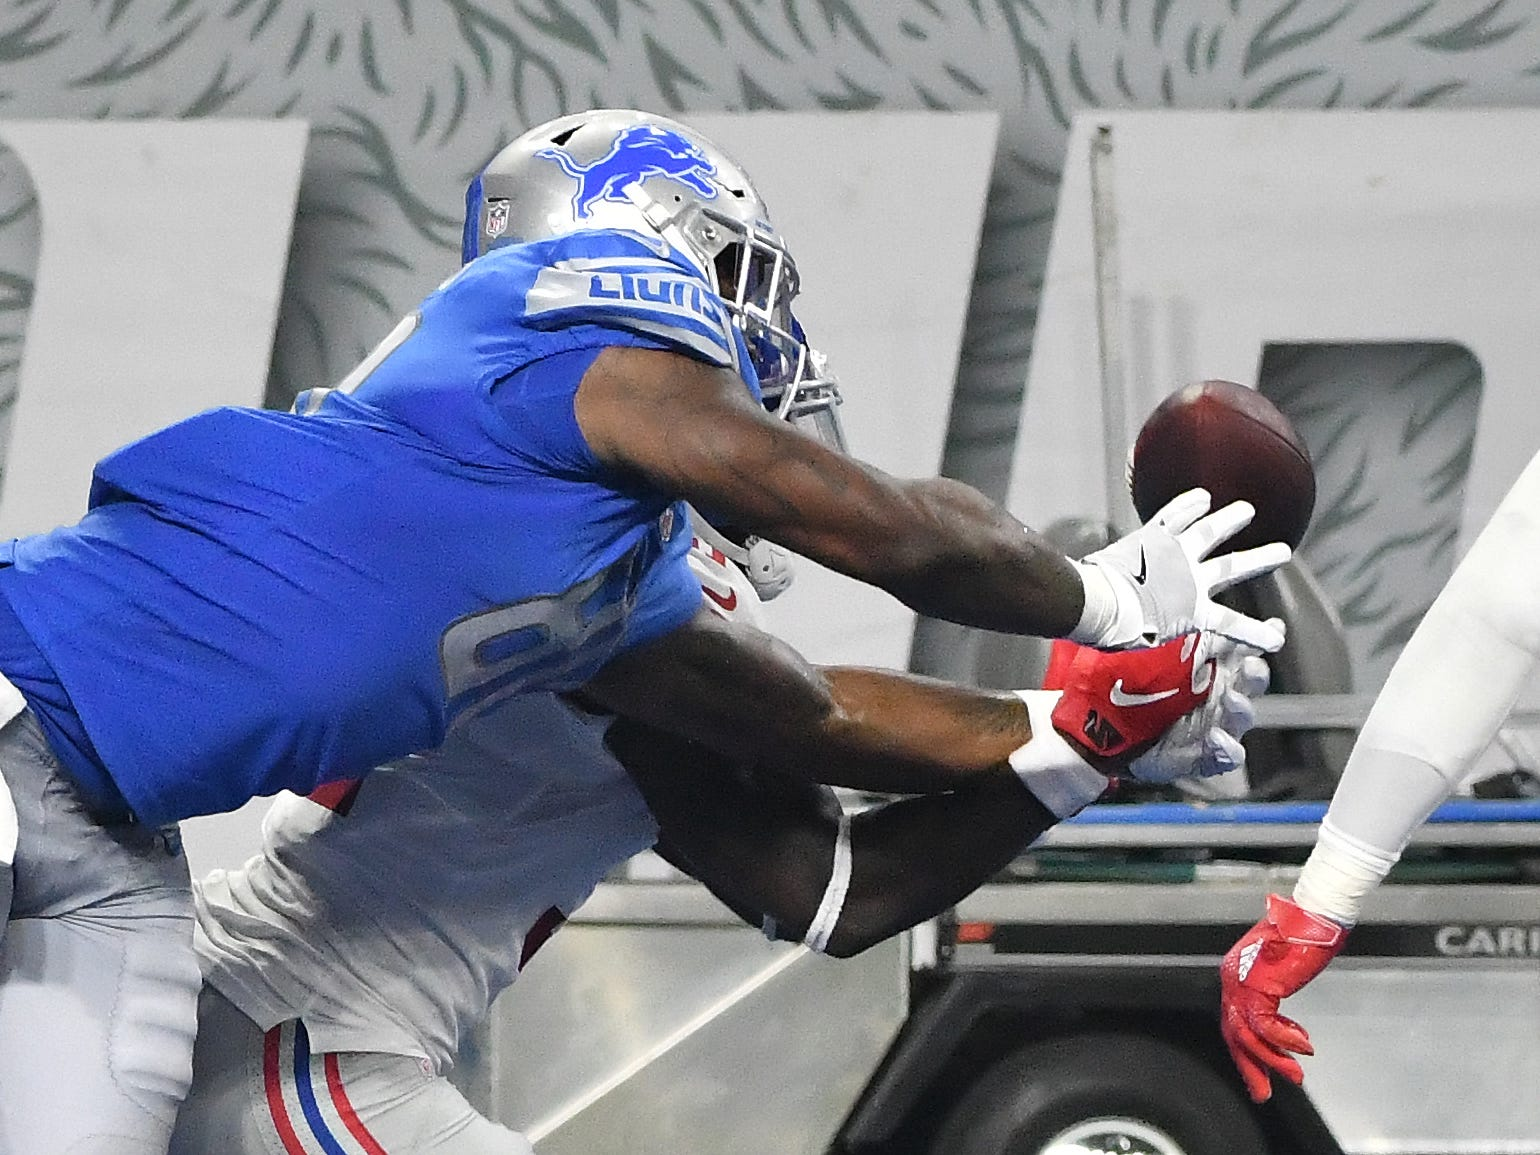 Lions' Michael Roberts breaks up an interception in the end zone by Giants safety Michael Thomas in the third quarter.